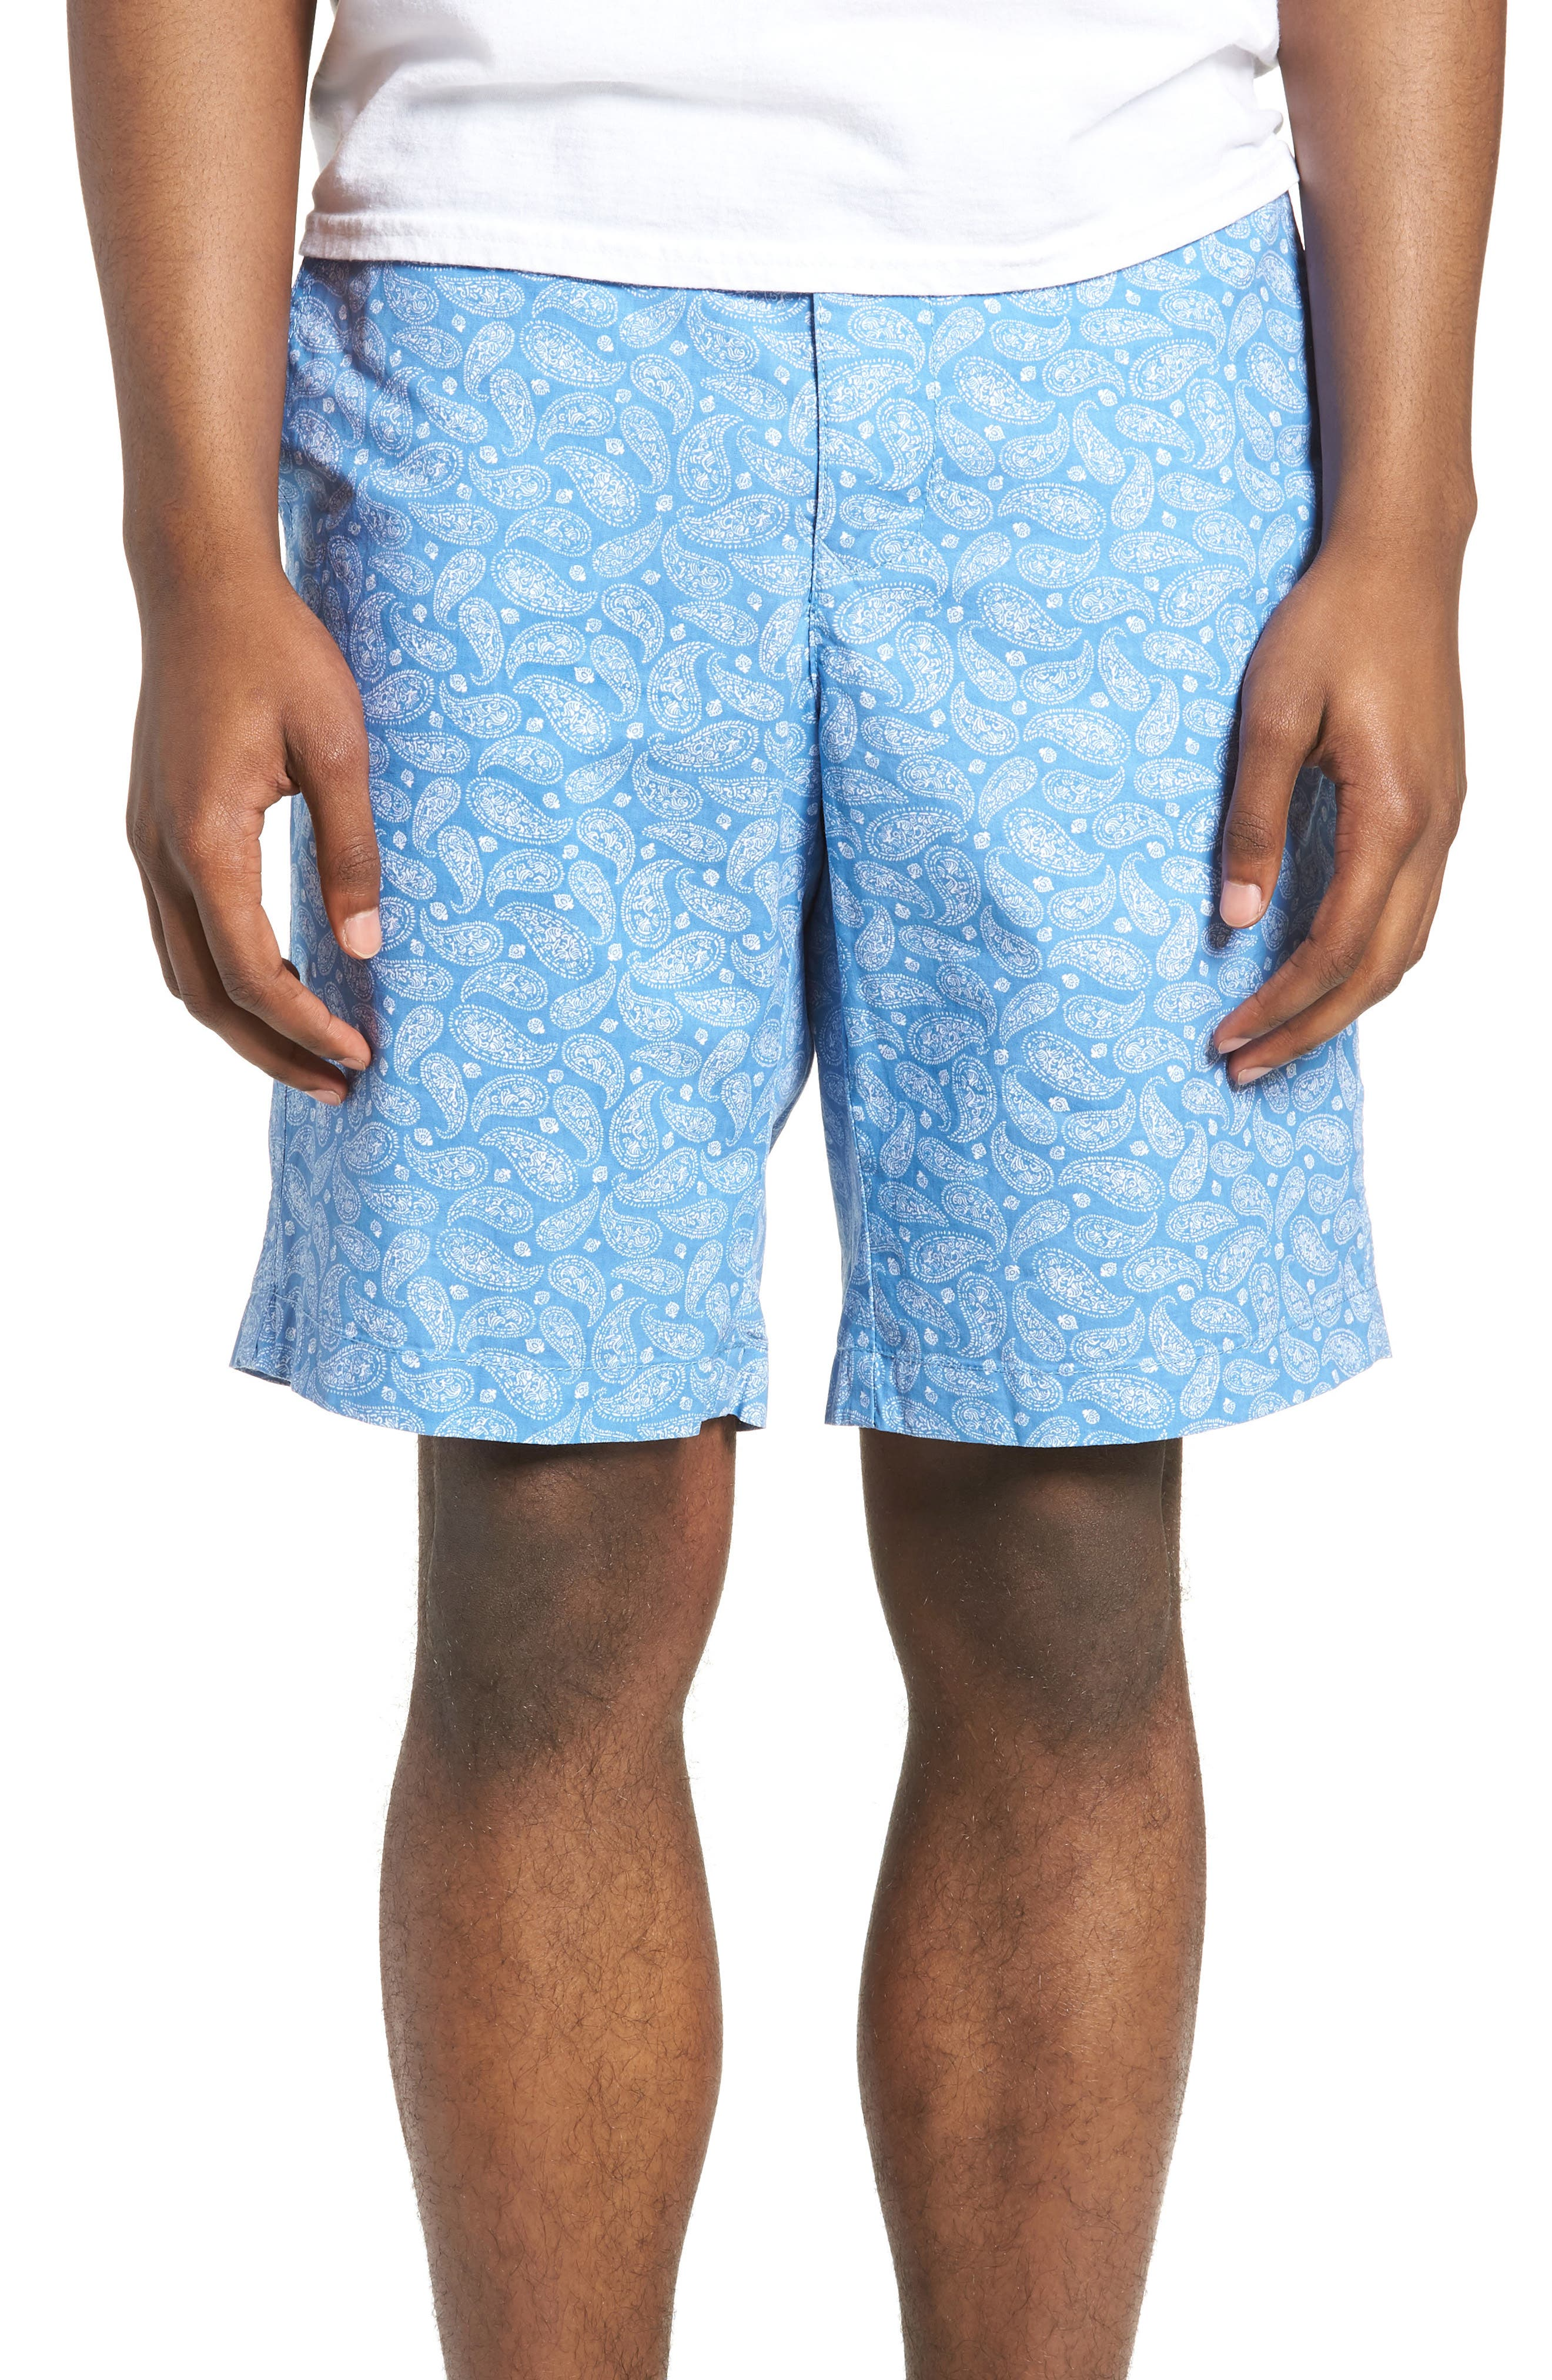 Bandana Paisley Print Shorts,                             Main thumbnail 1, color,                             420